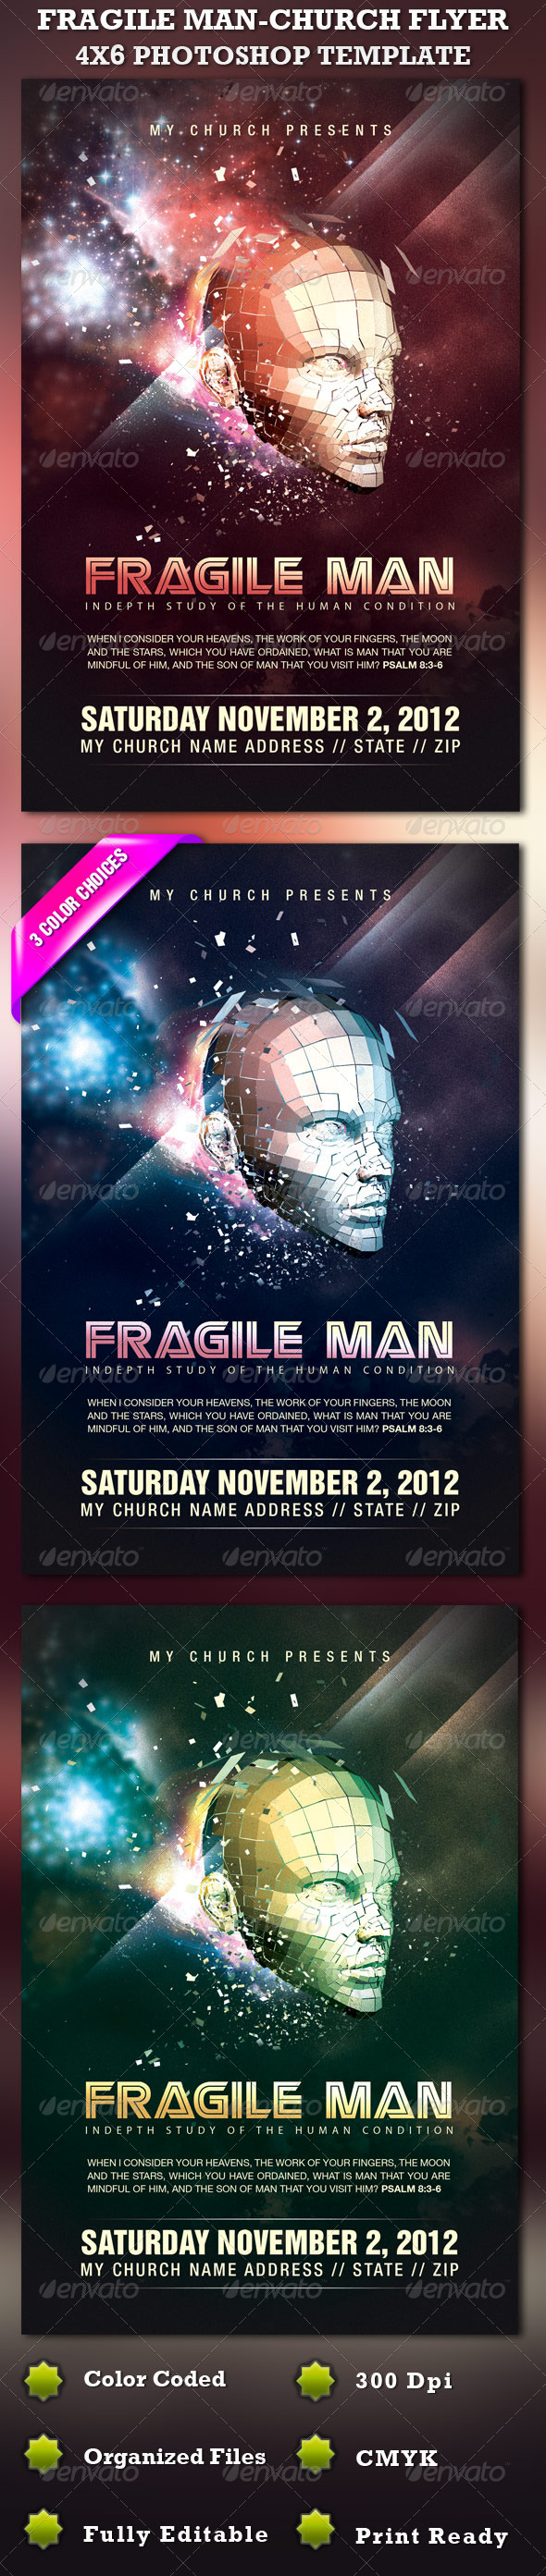 Fragile Man-Church Flyer Template - Church Flyers